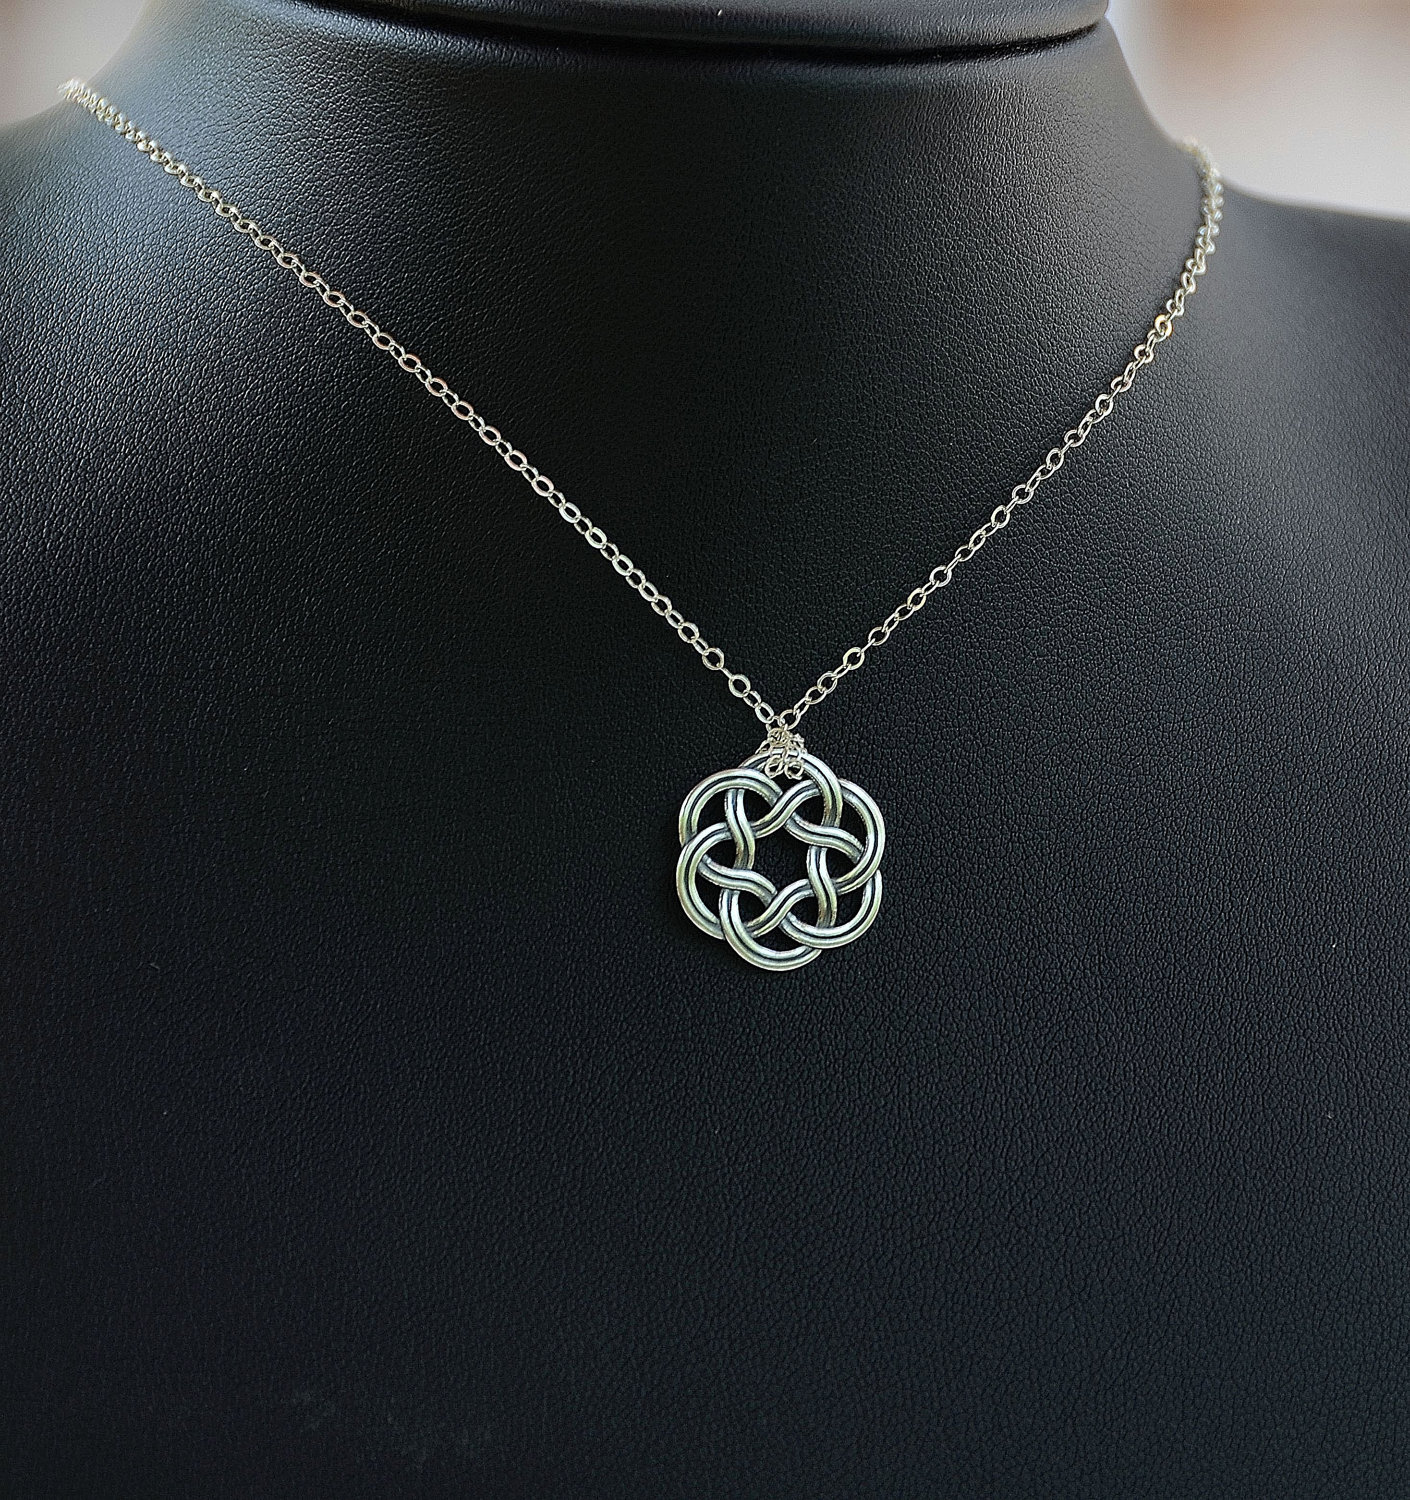 necklace cetic sterling celtic jewelry silver eleganceceltic fiona knot elegance product